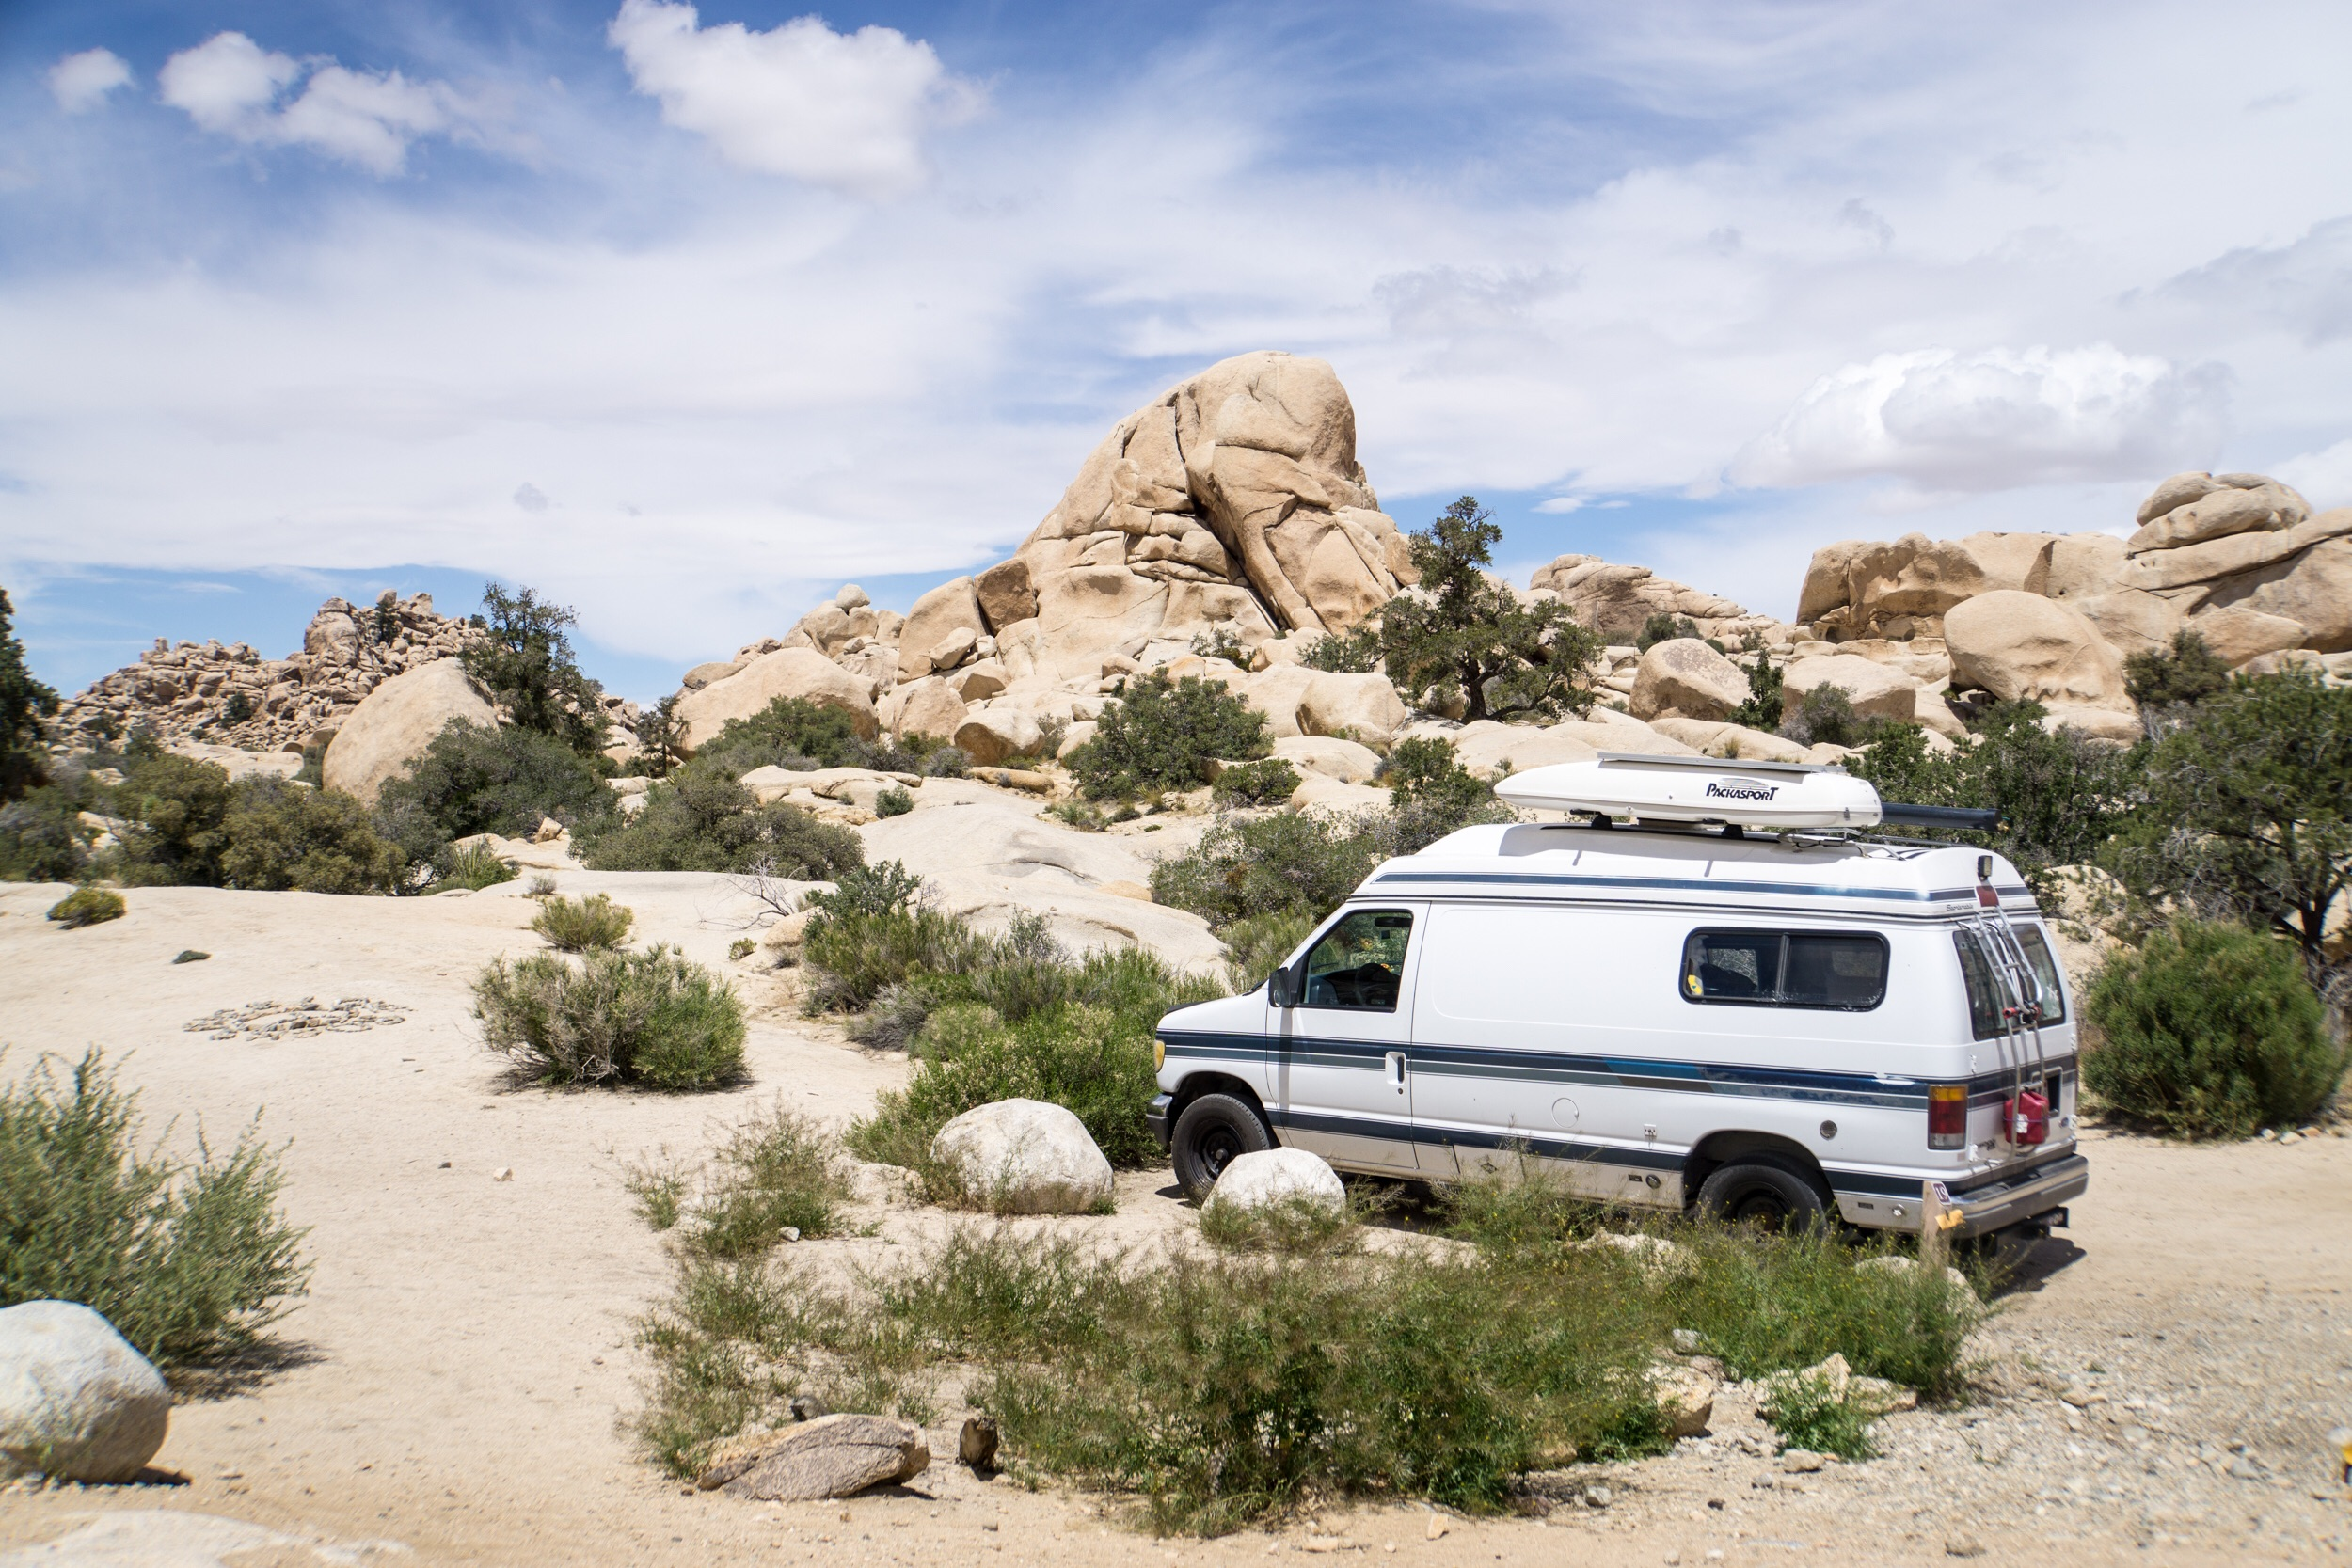 While staying in Hidden Valley, our campsite neighbors were four Canadians who drove 21 hours straight from Vancouver to climb at Joshua Tree. On their rest day, they took a side trip to TJ. Rad kids.